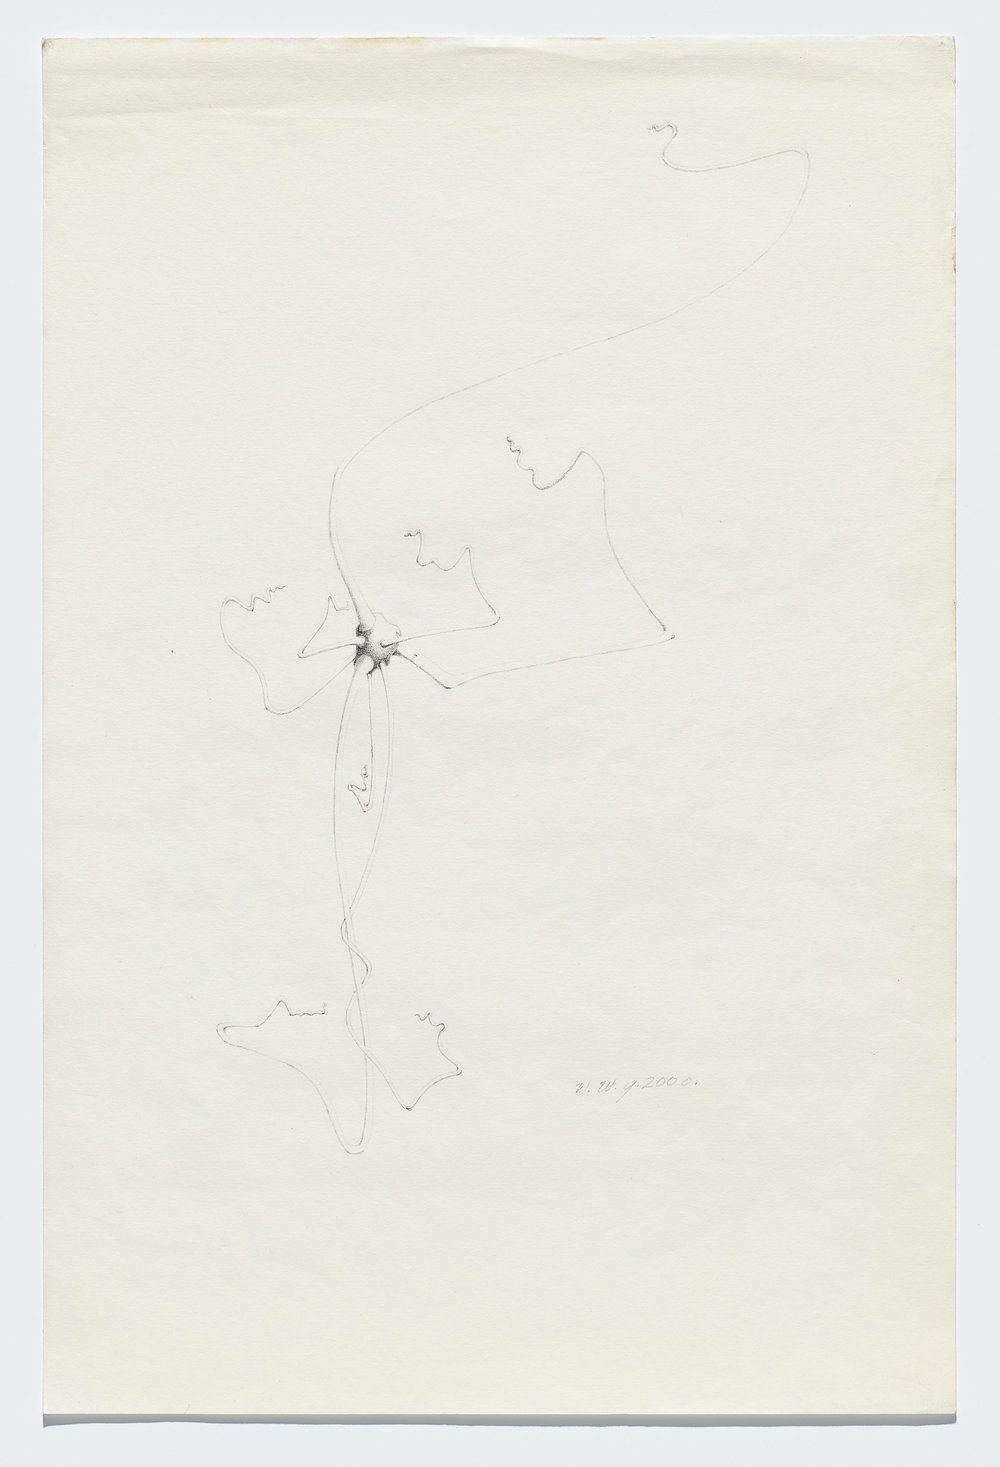 Willie Young, Untitled, 2000. Graphite on Paper, 18 x 12 in. Price on Request Reference 0198